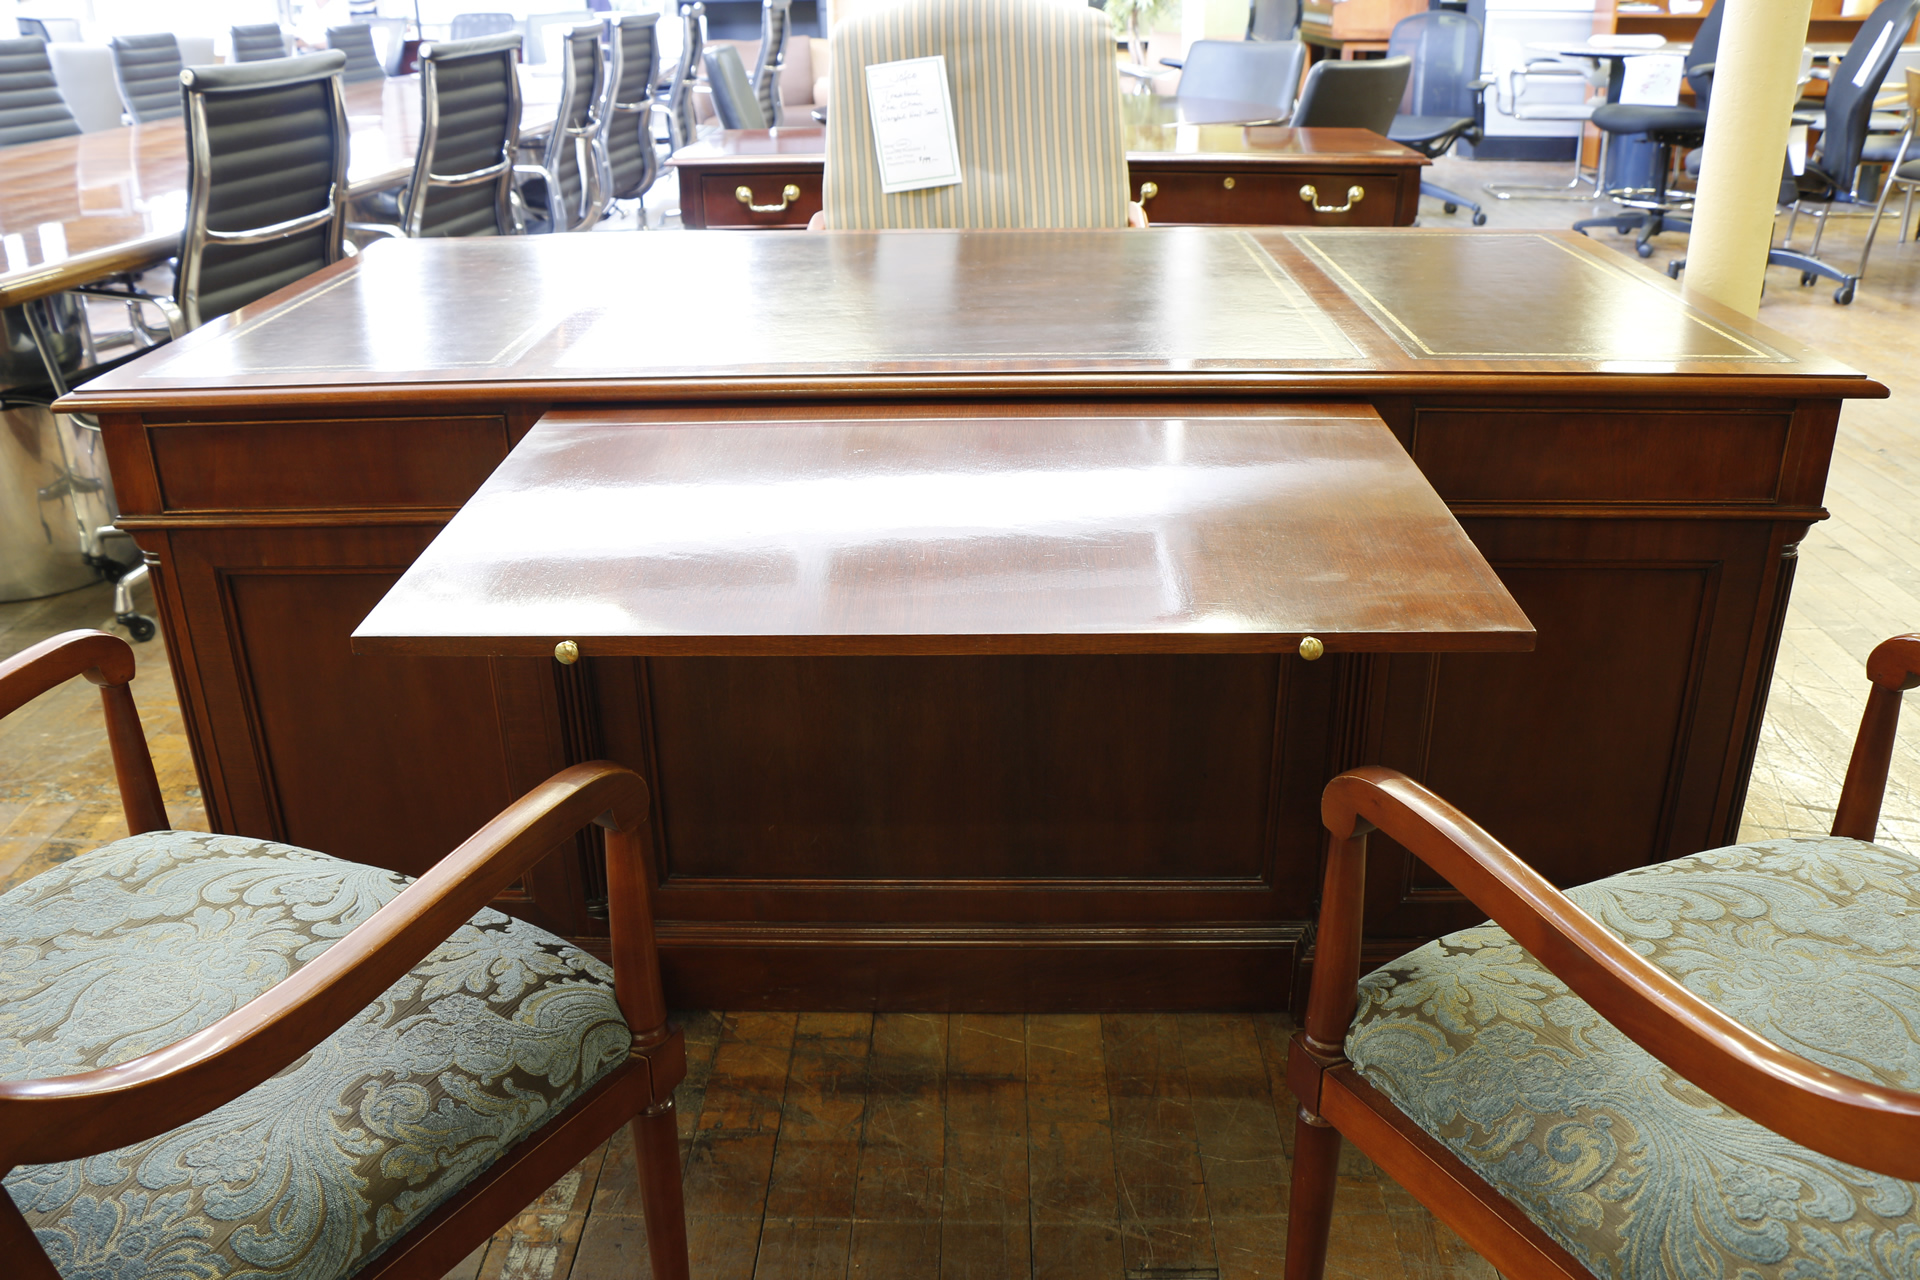 peartreeofficefurniture_peartreeofficefurniture_mg_4238.jpg